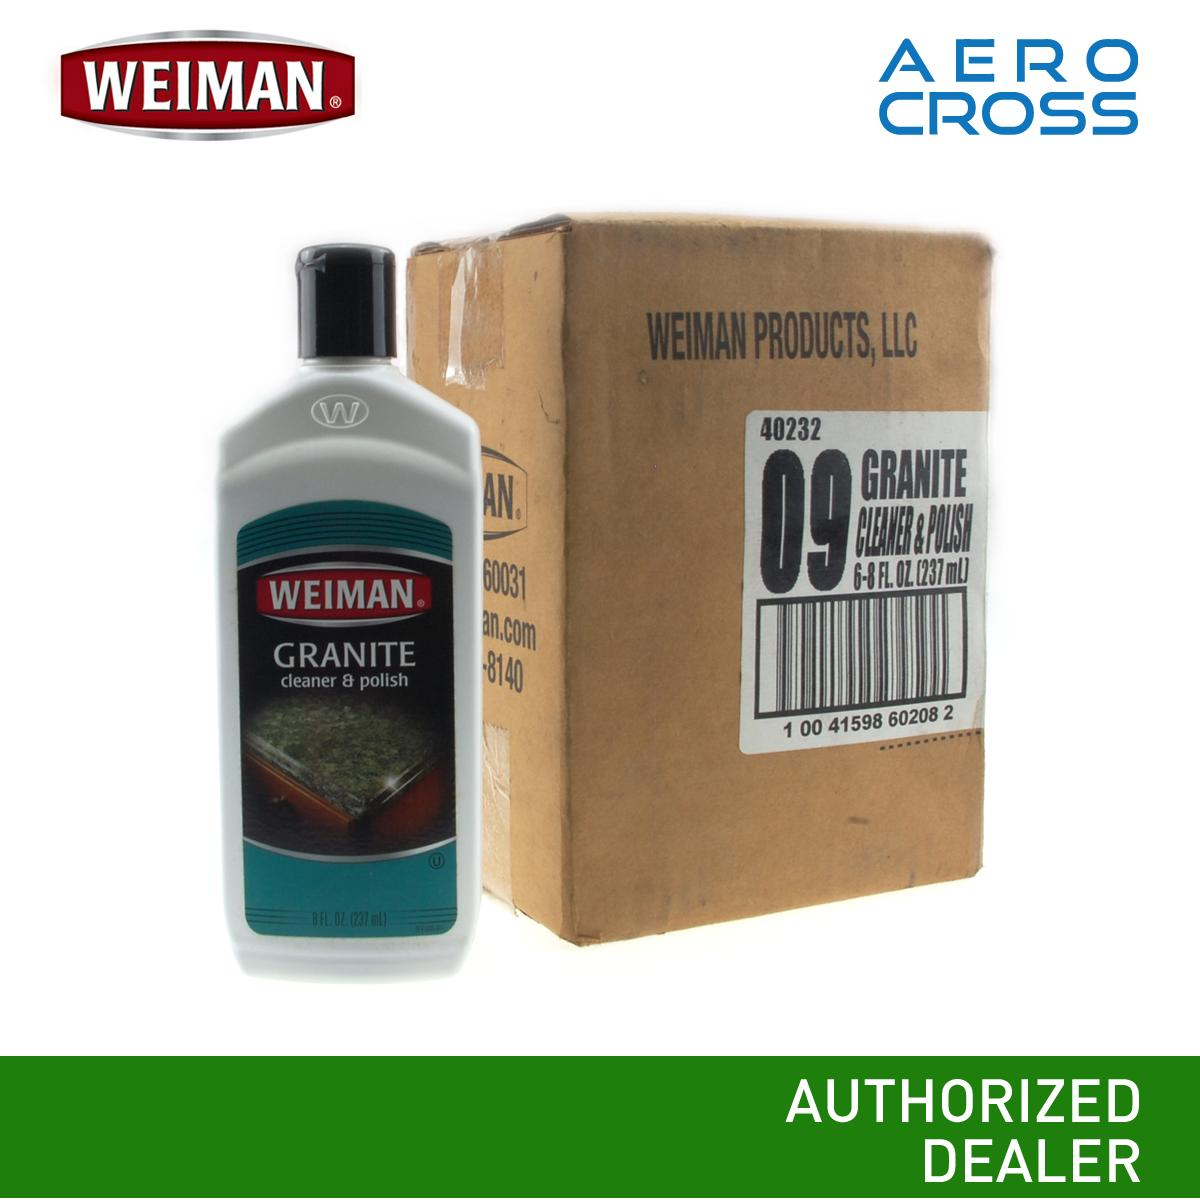 Ac Weiman Granite Cleaner And Polish 1 Box (6 Pcs.) By Aerocross Phils..